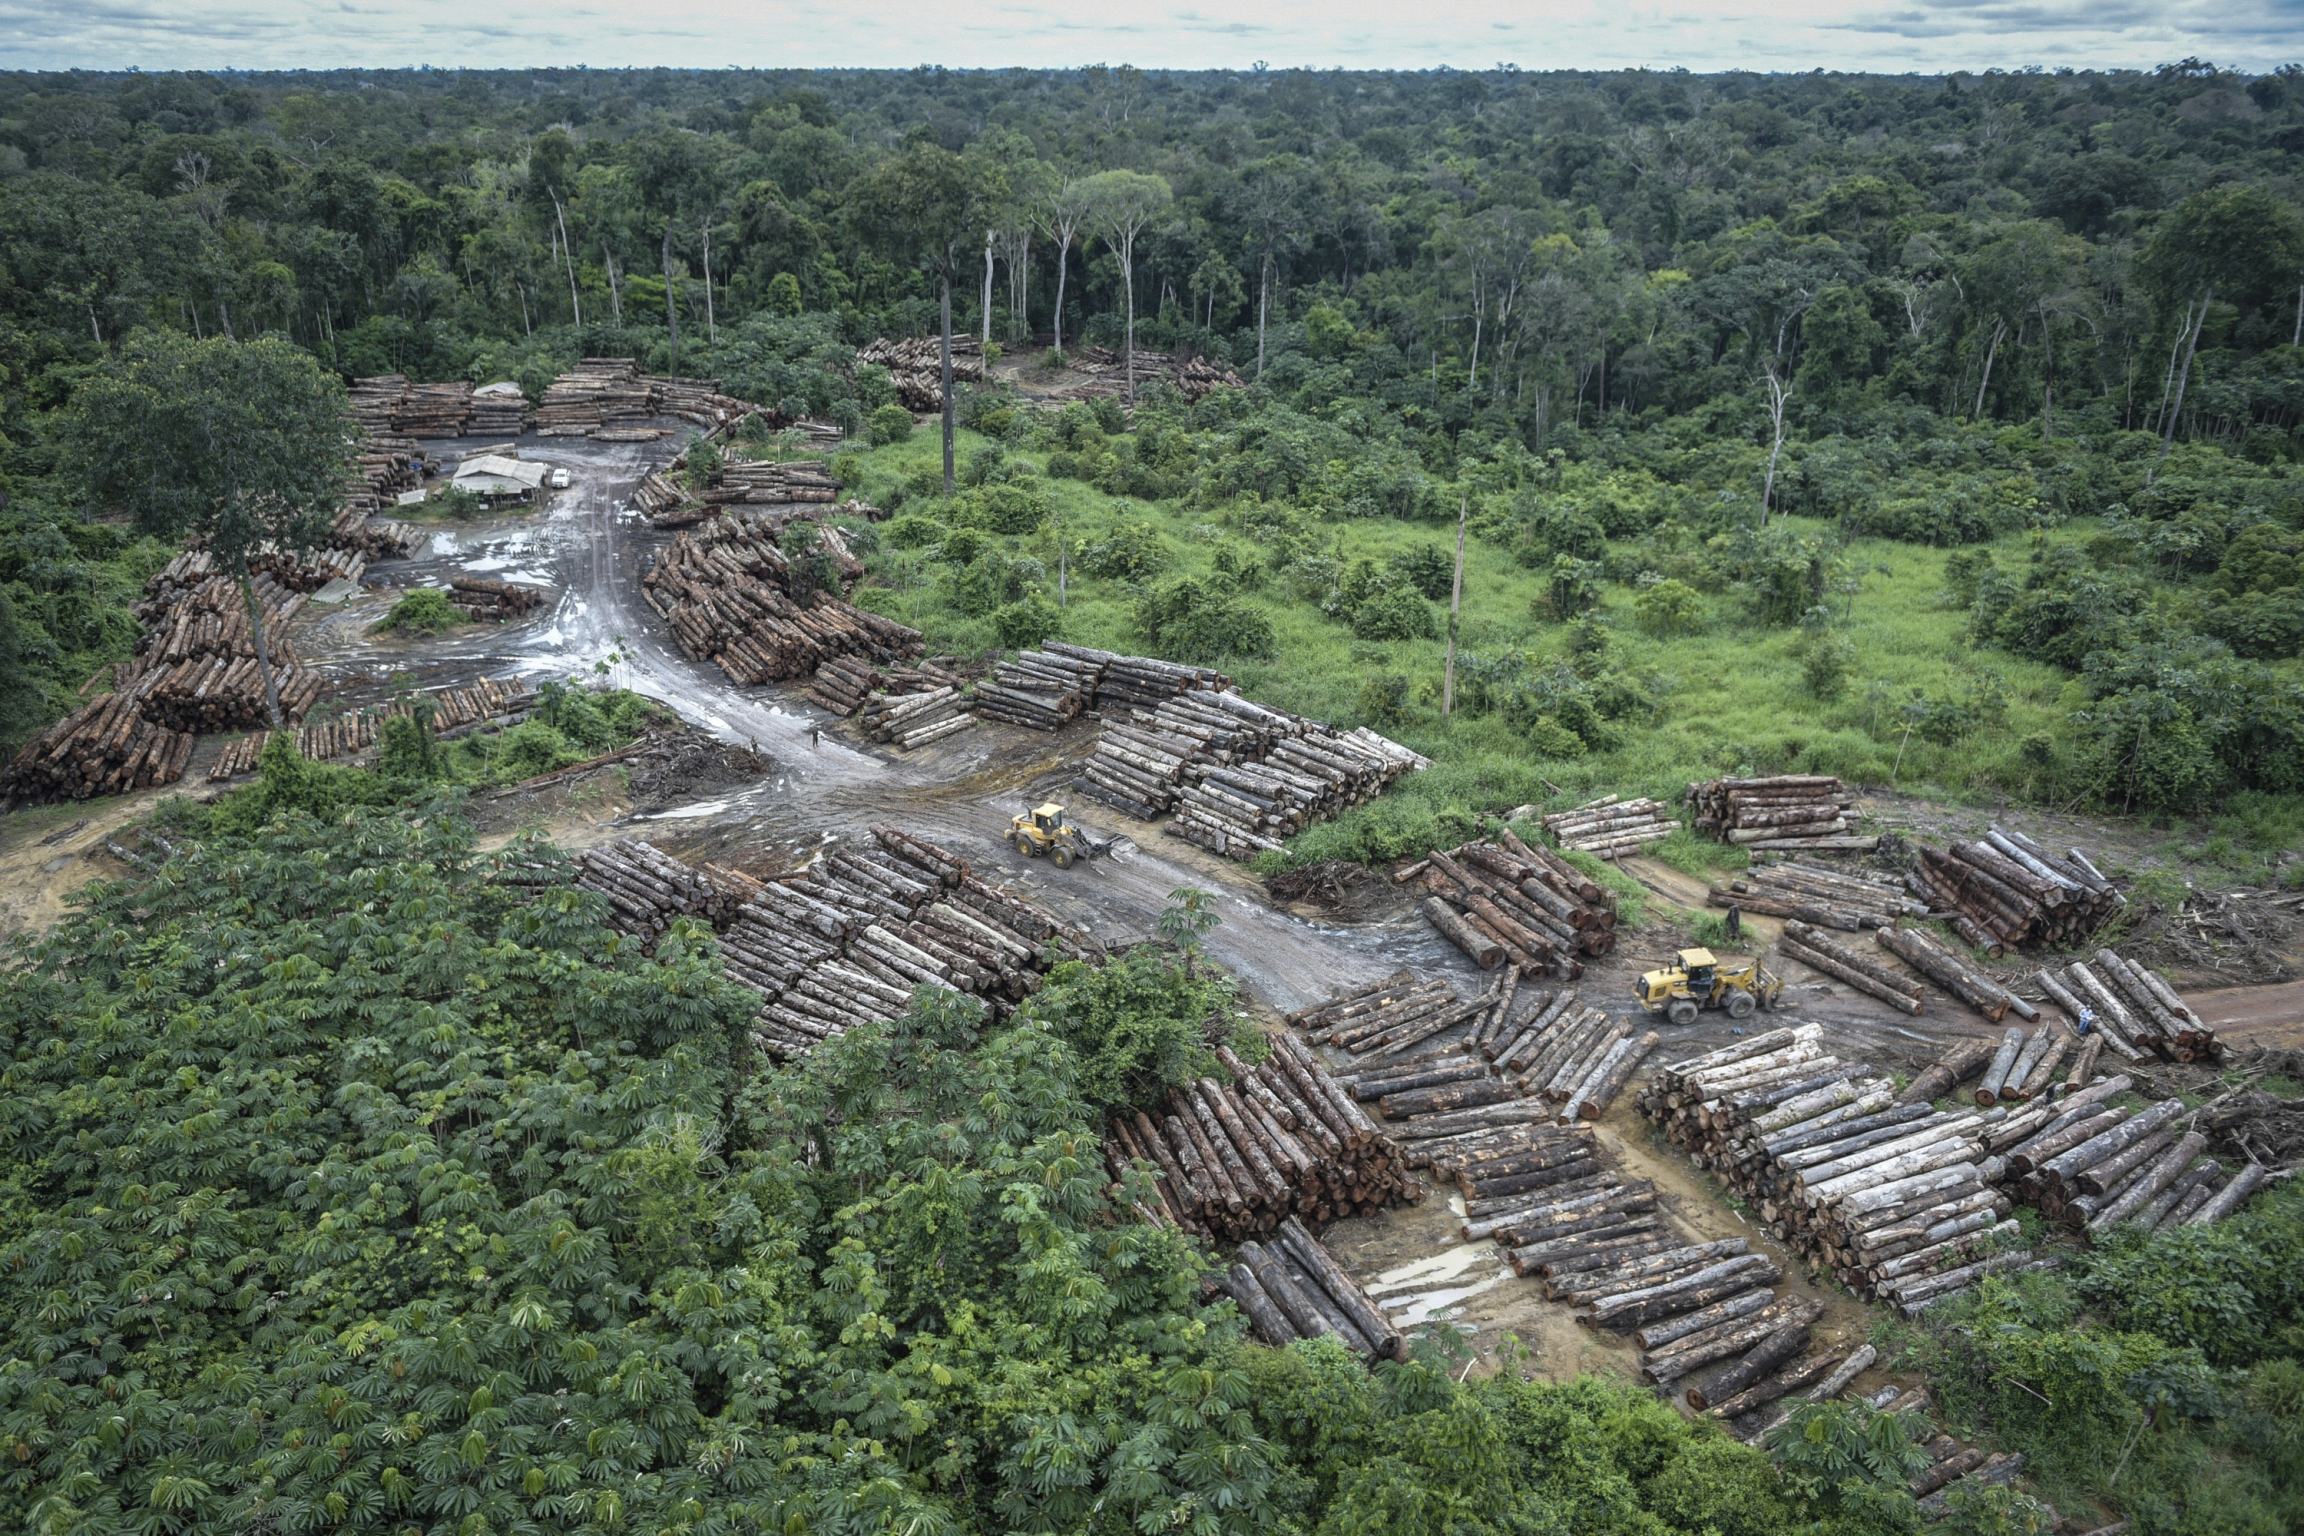 Image of an illegally deforested area on Pirititi Indigenous lands.